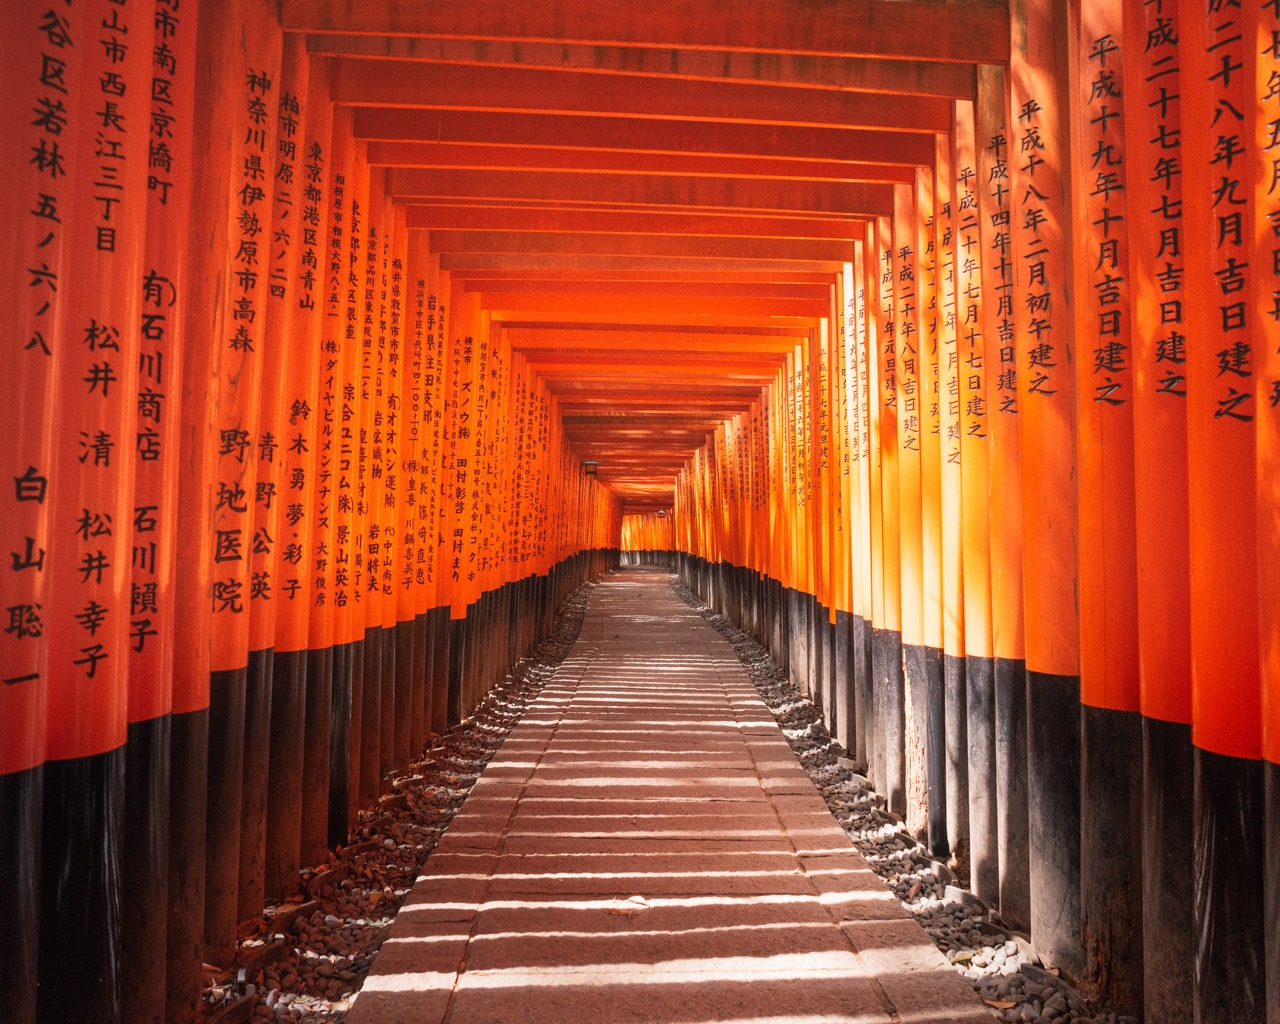 5 Easy tips to save money & plan an amazing Japan trip!